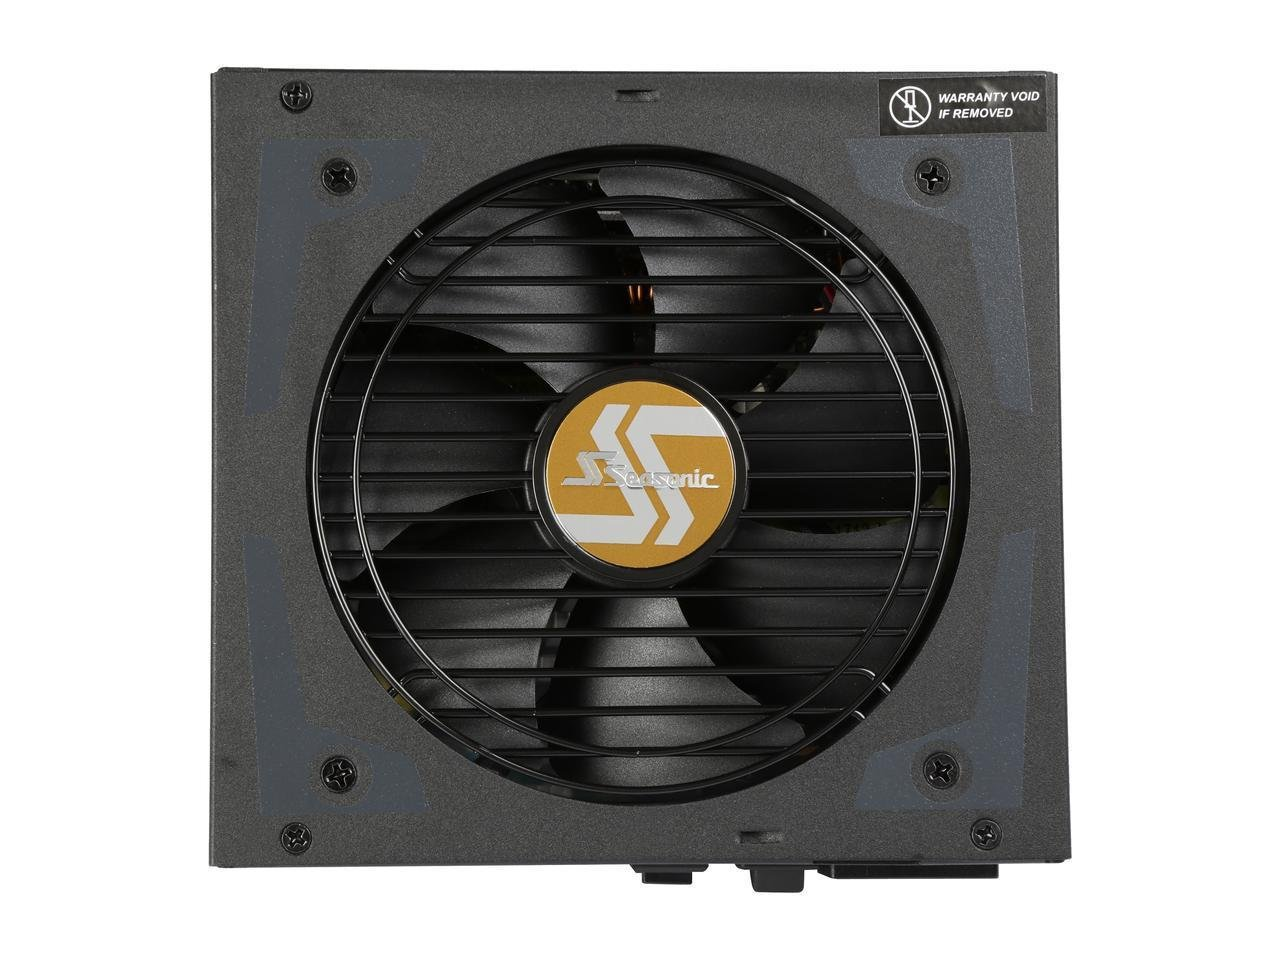 650W 80+ Platinum Full-Modular Fan Control in Fanless SSR-650PX. Silent Perfect Power Supply for Gaming and Various Application 10 Year Warranty and Cooling Mode Seasonic Focus PX-650